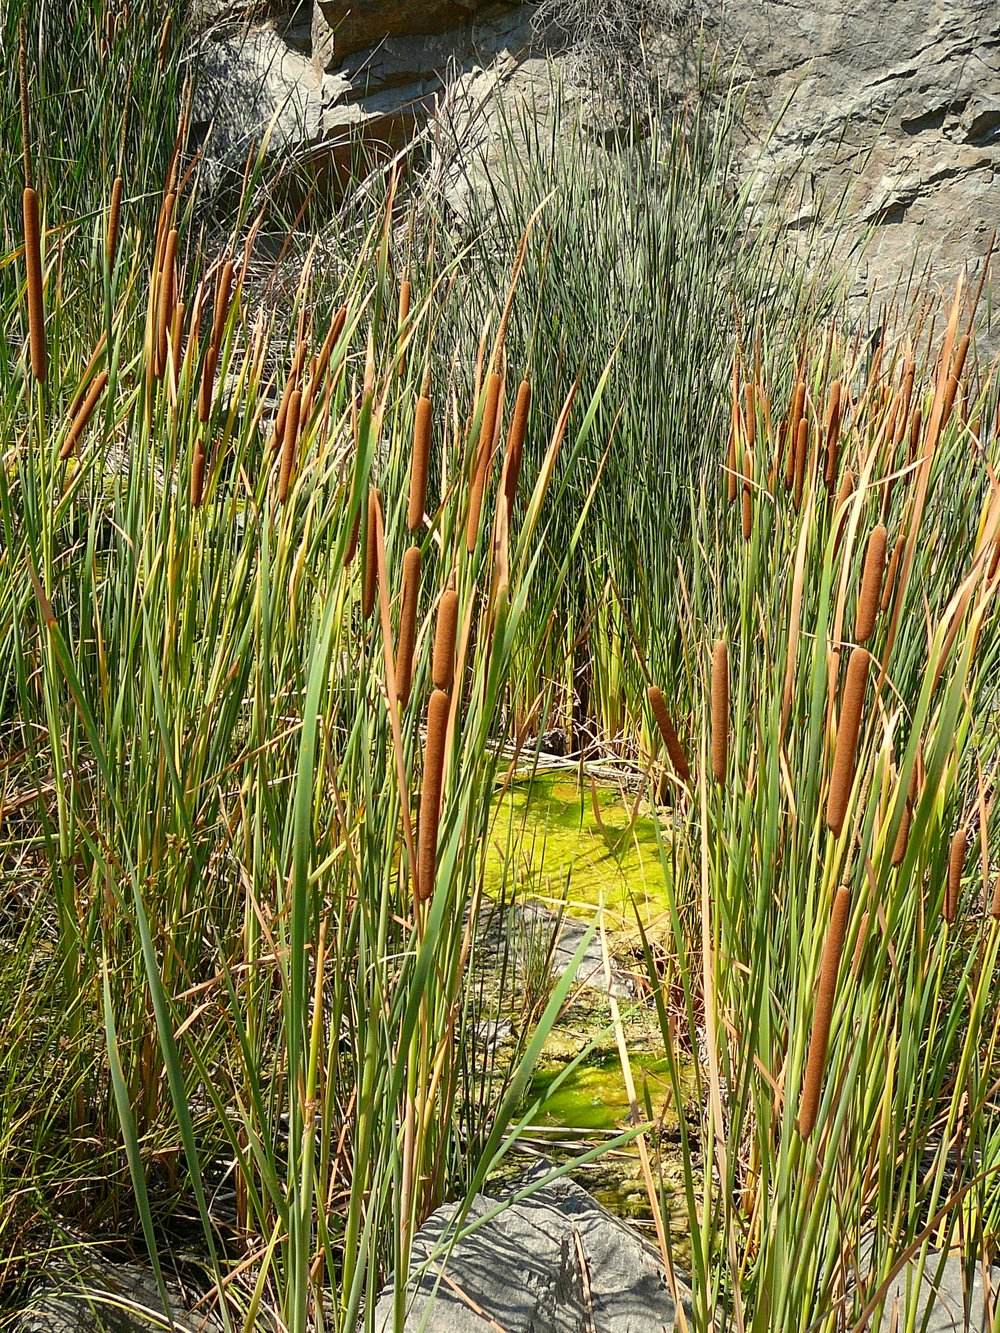 Willows, juncus, and pond moss are found along a small and almost stagnant stream.